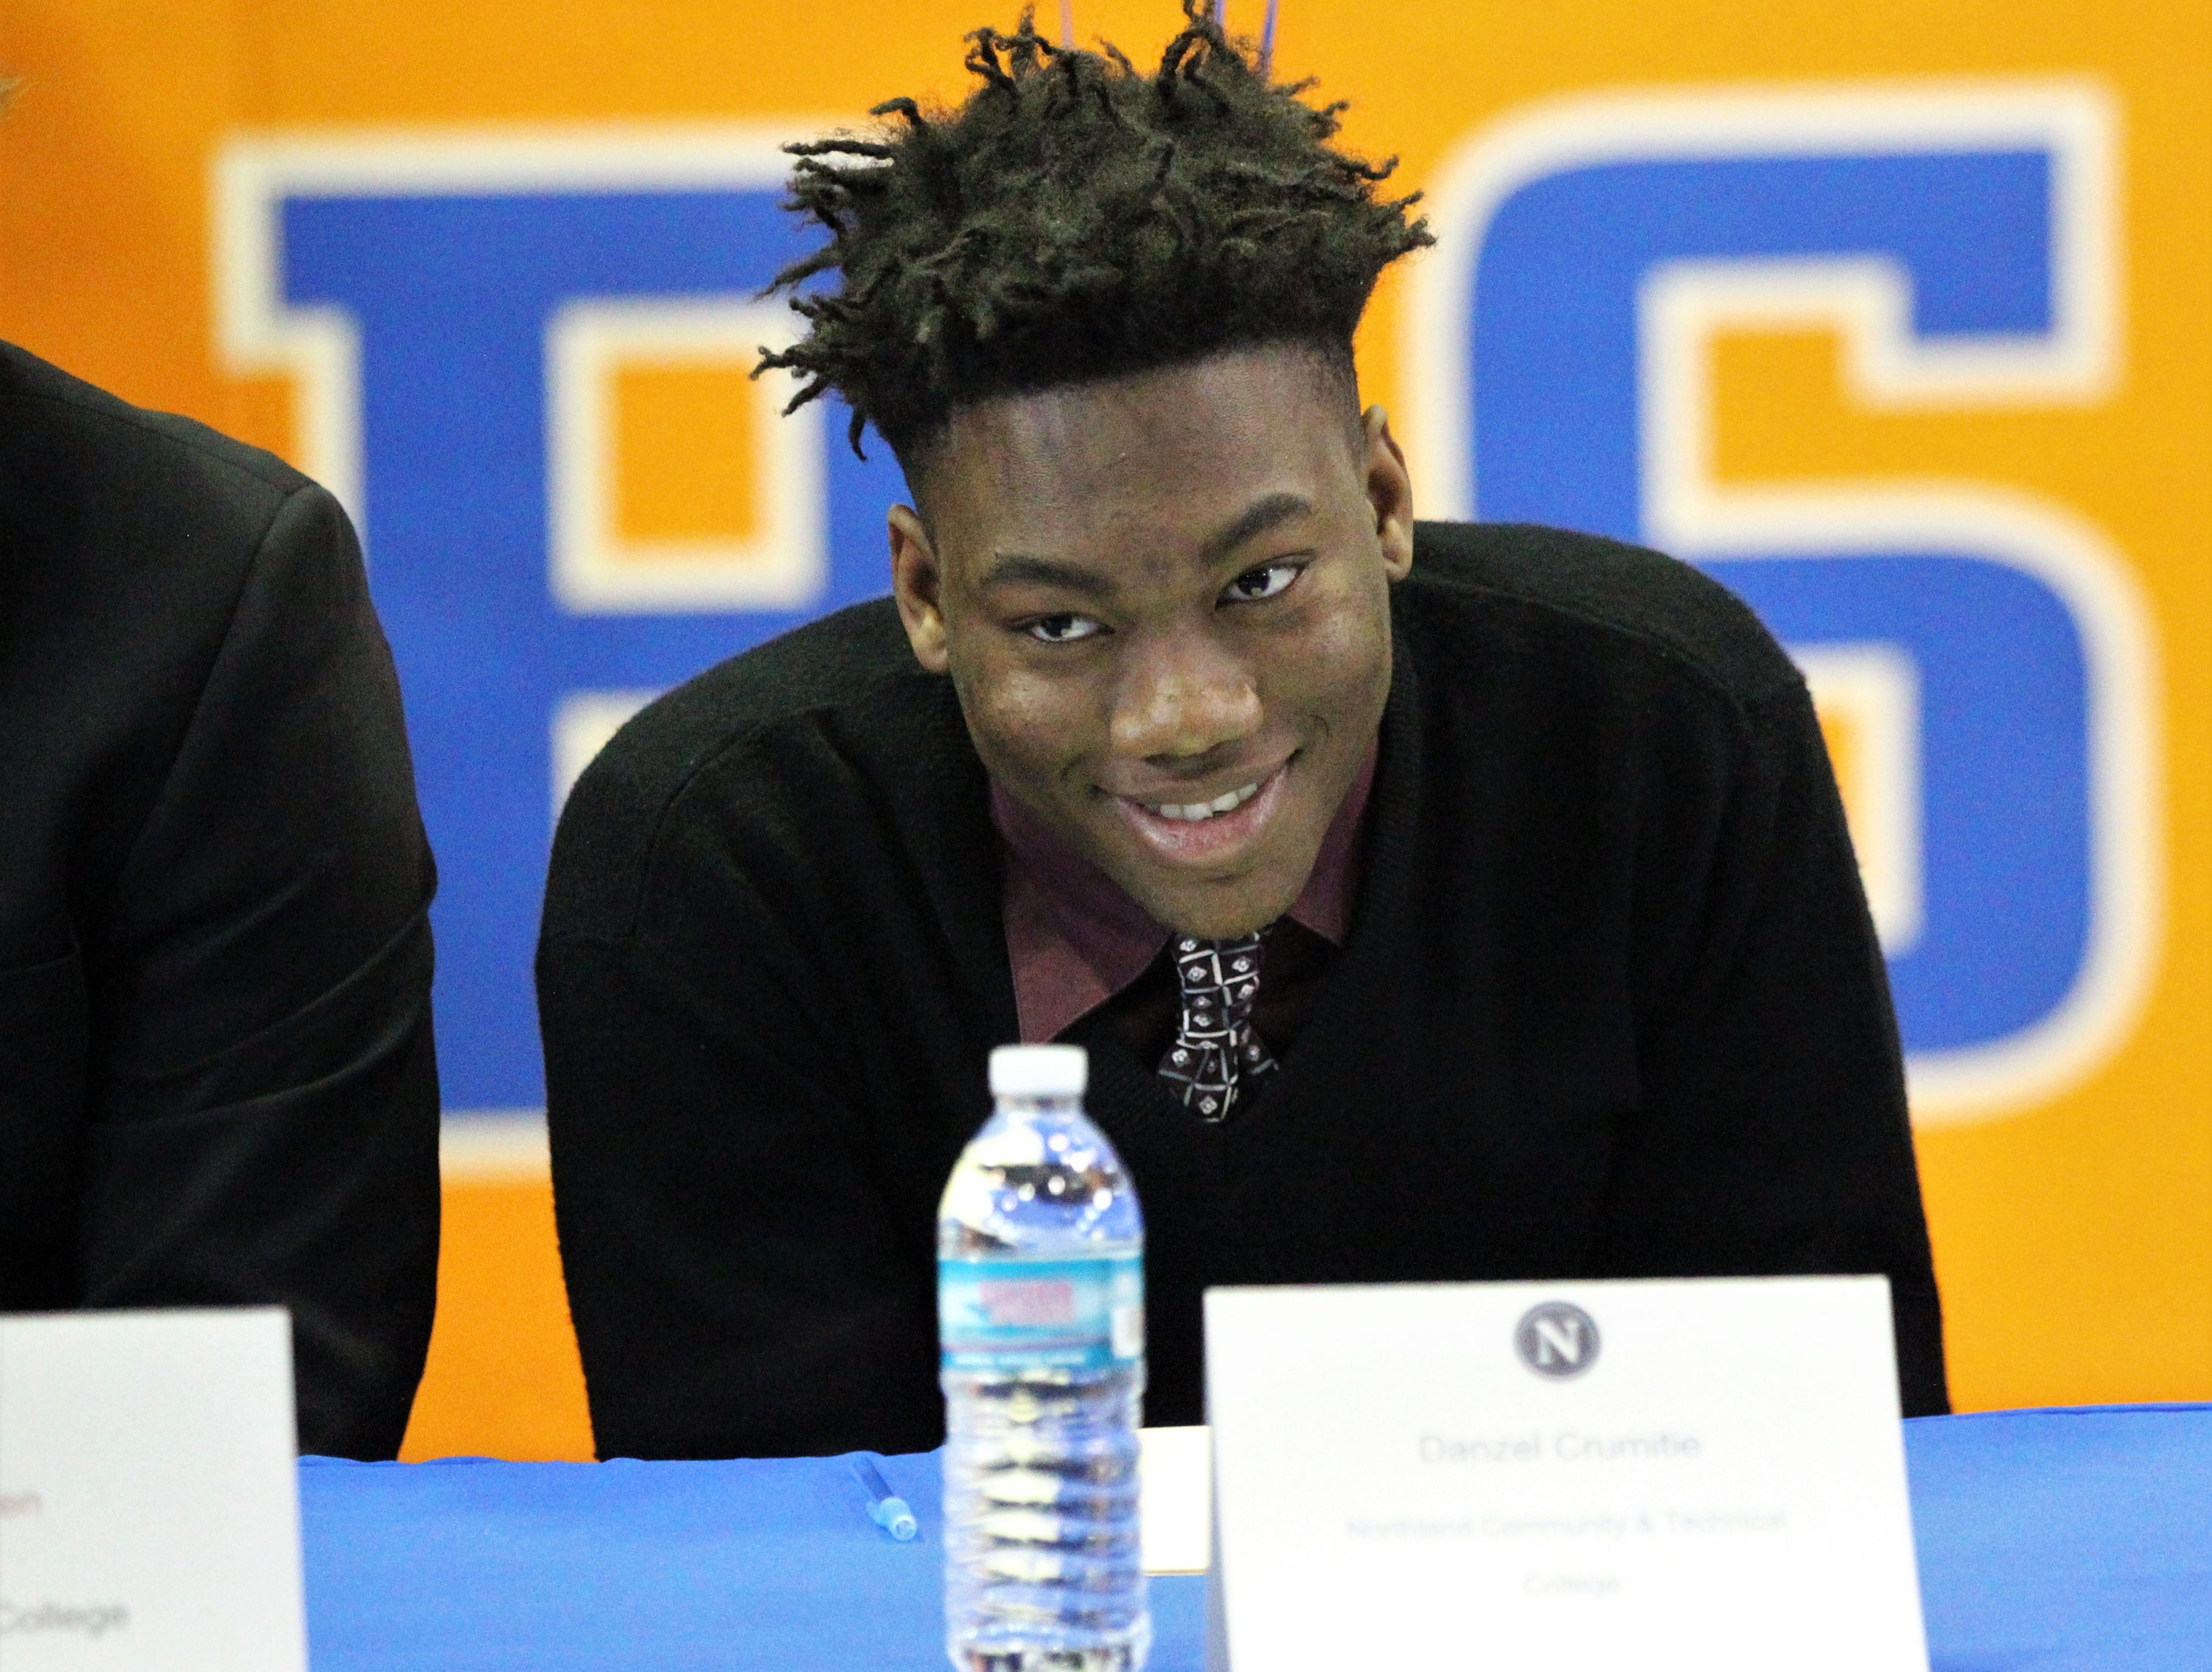 Jefferson County linebacker Danzel Crumitie, who signed with Northland College, smiles during Jefferson County's signing day ceremony on Feb. 13, 2019.